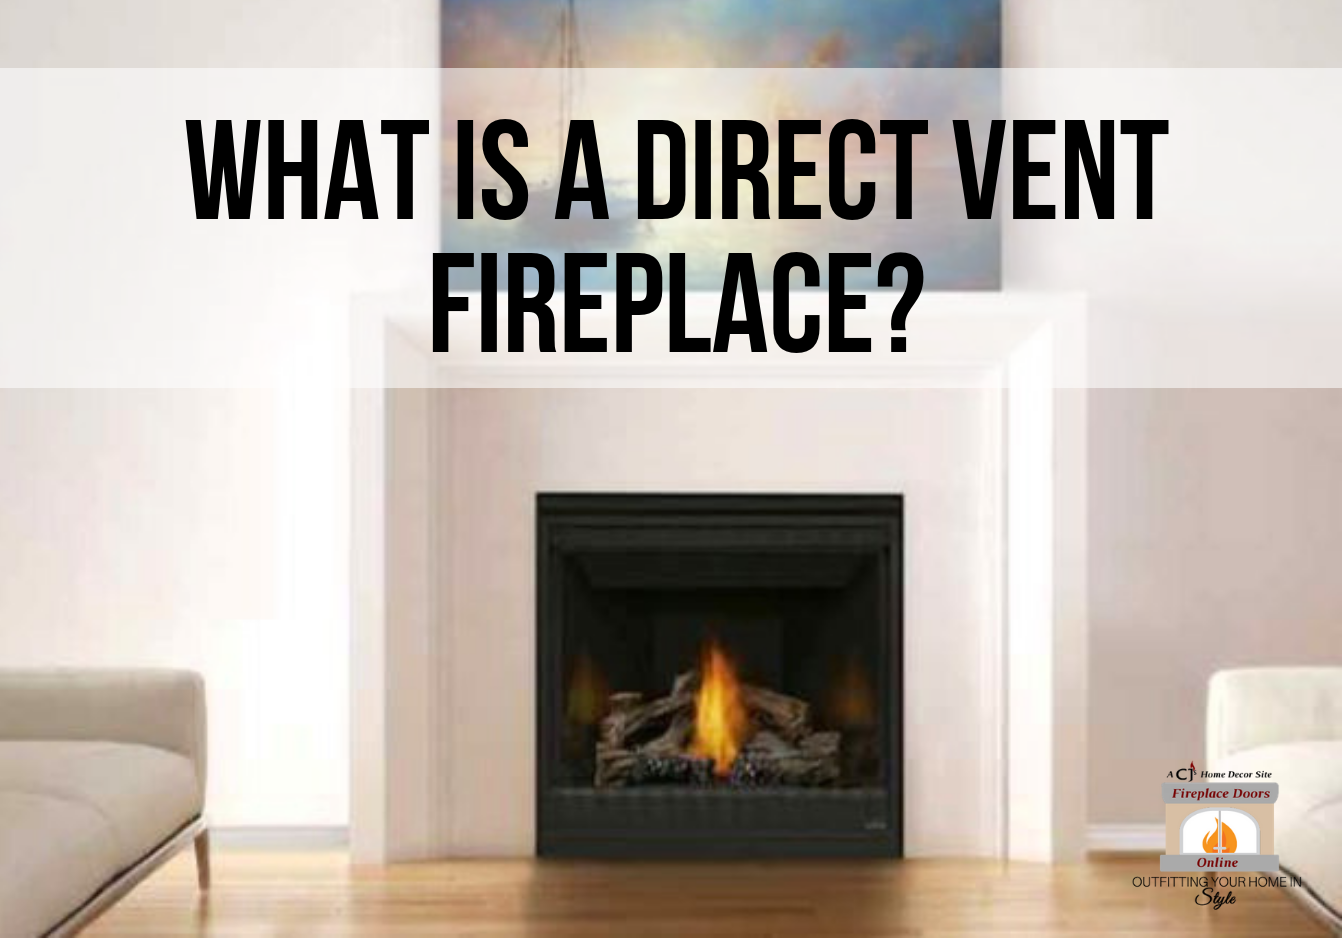 What is a direct vent fireplace? Maintenance and repair